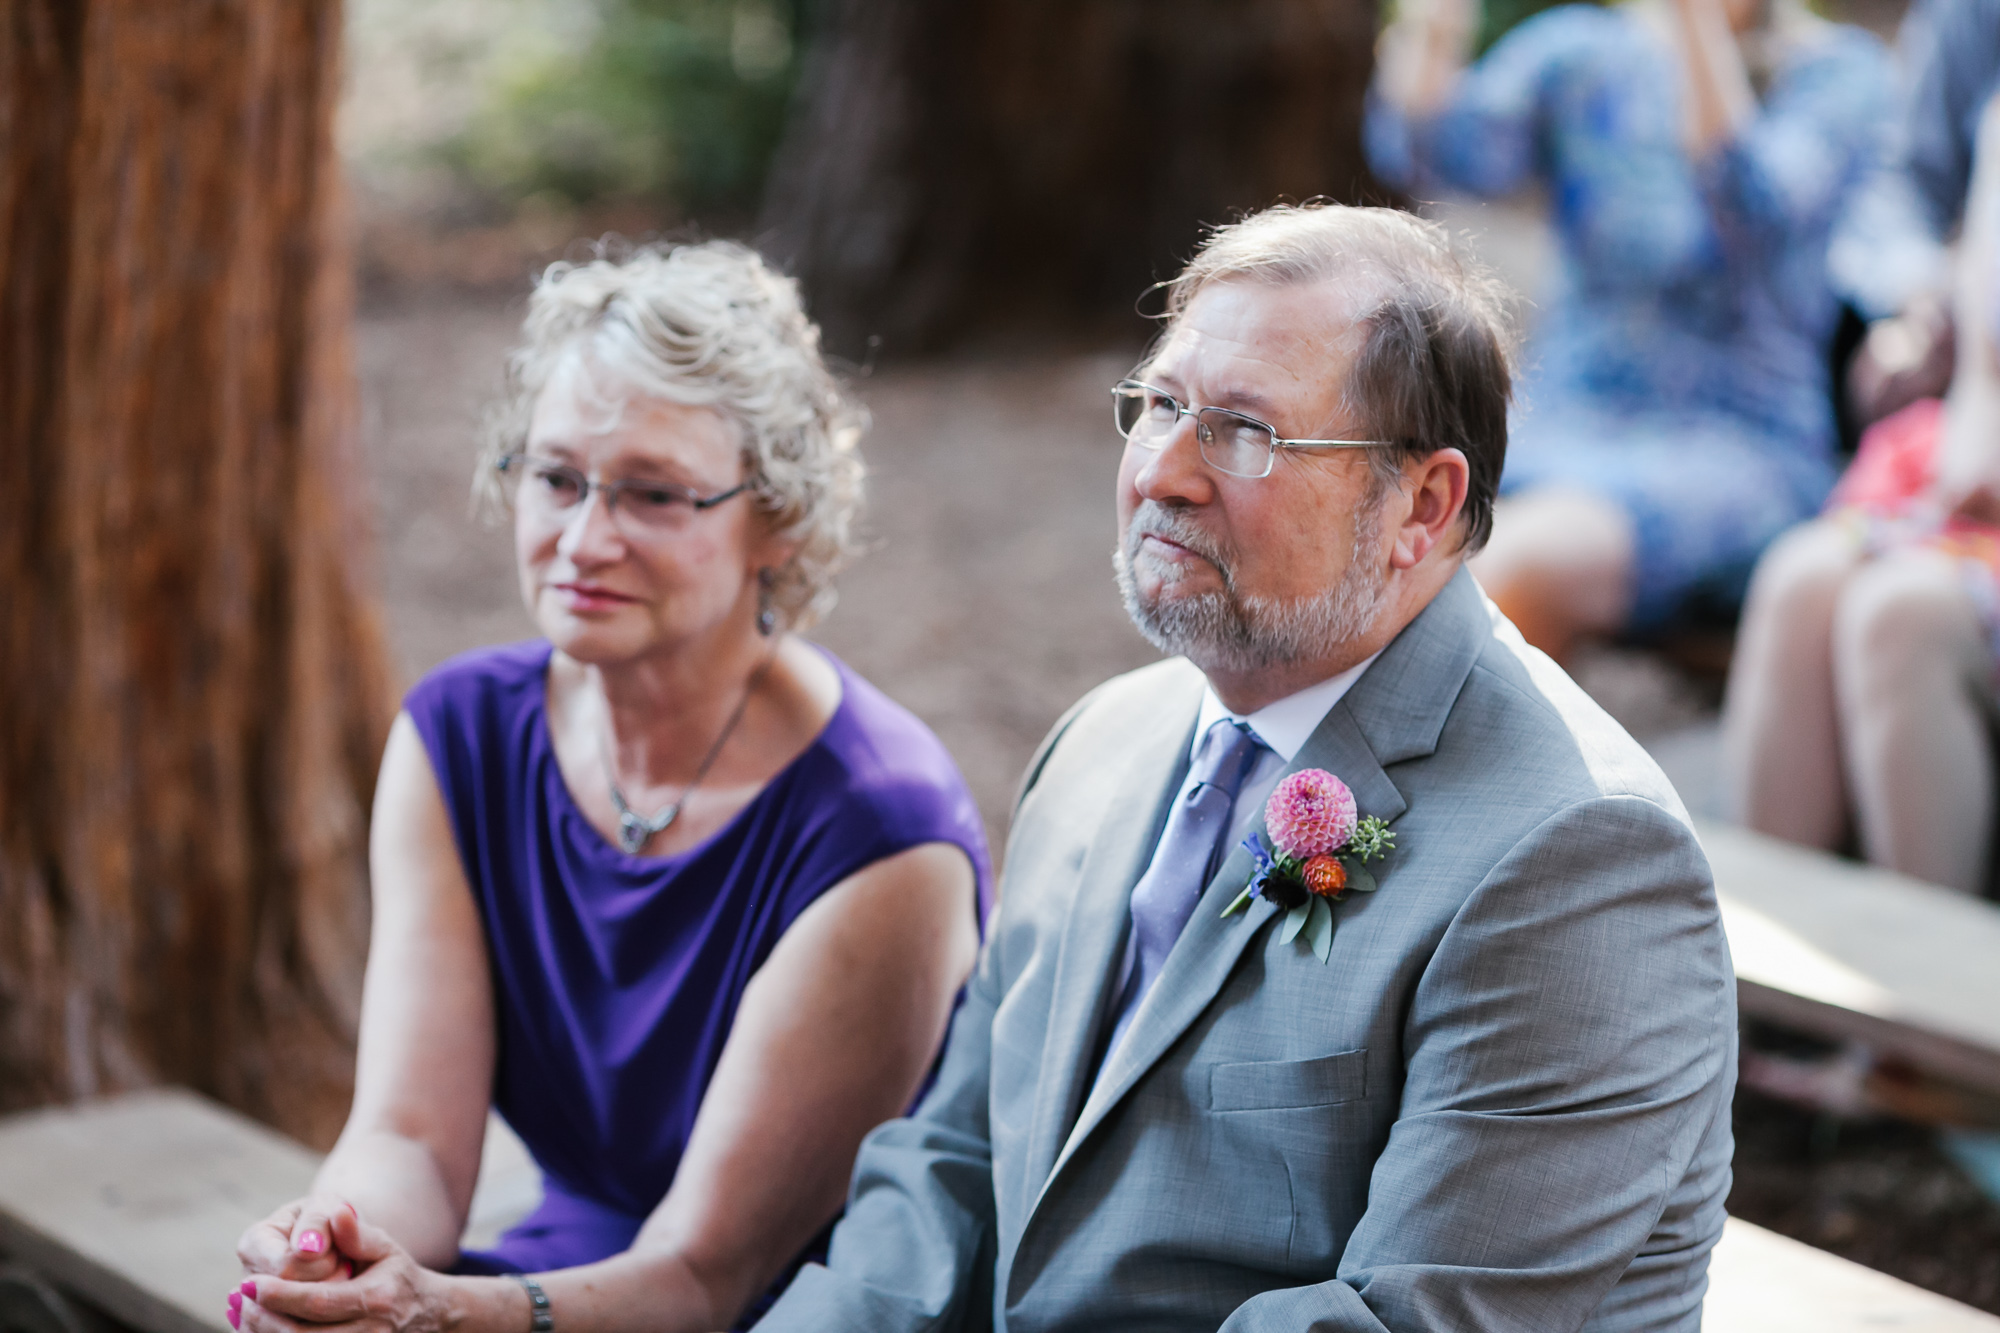 Groom's parents look proud as their son gets married